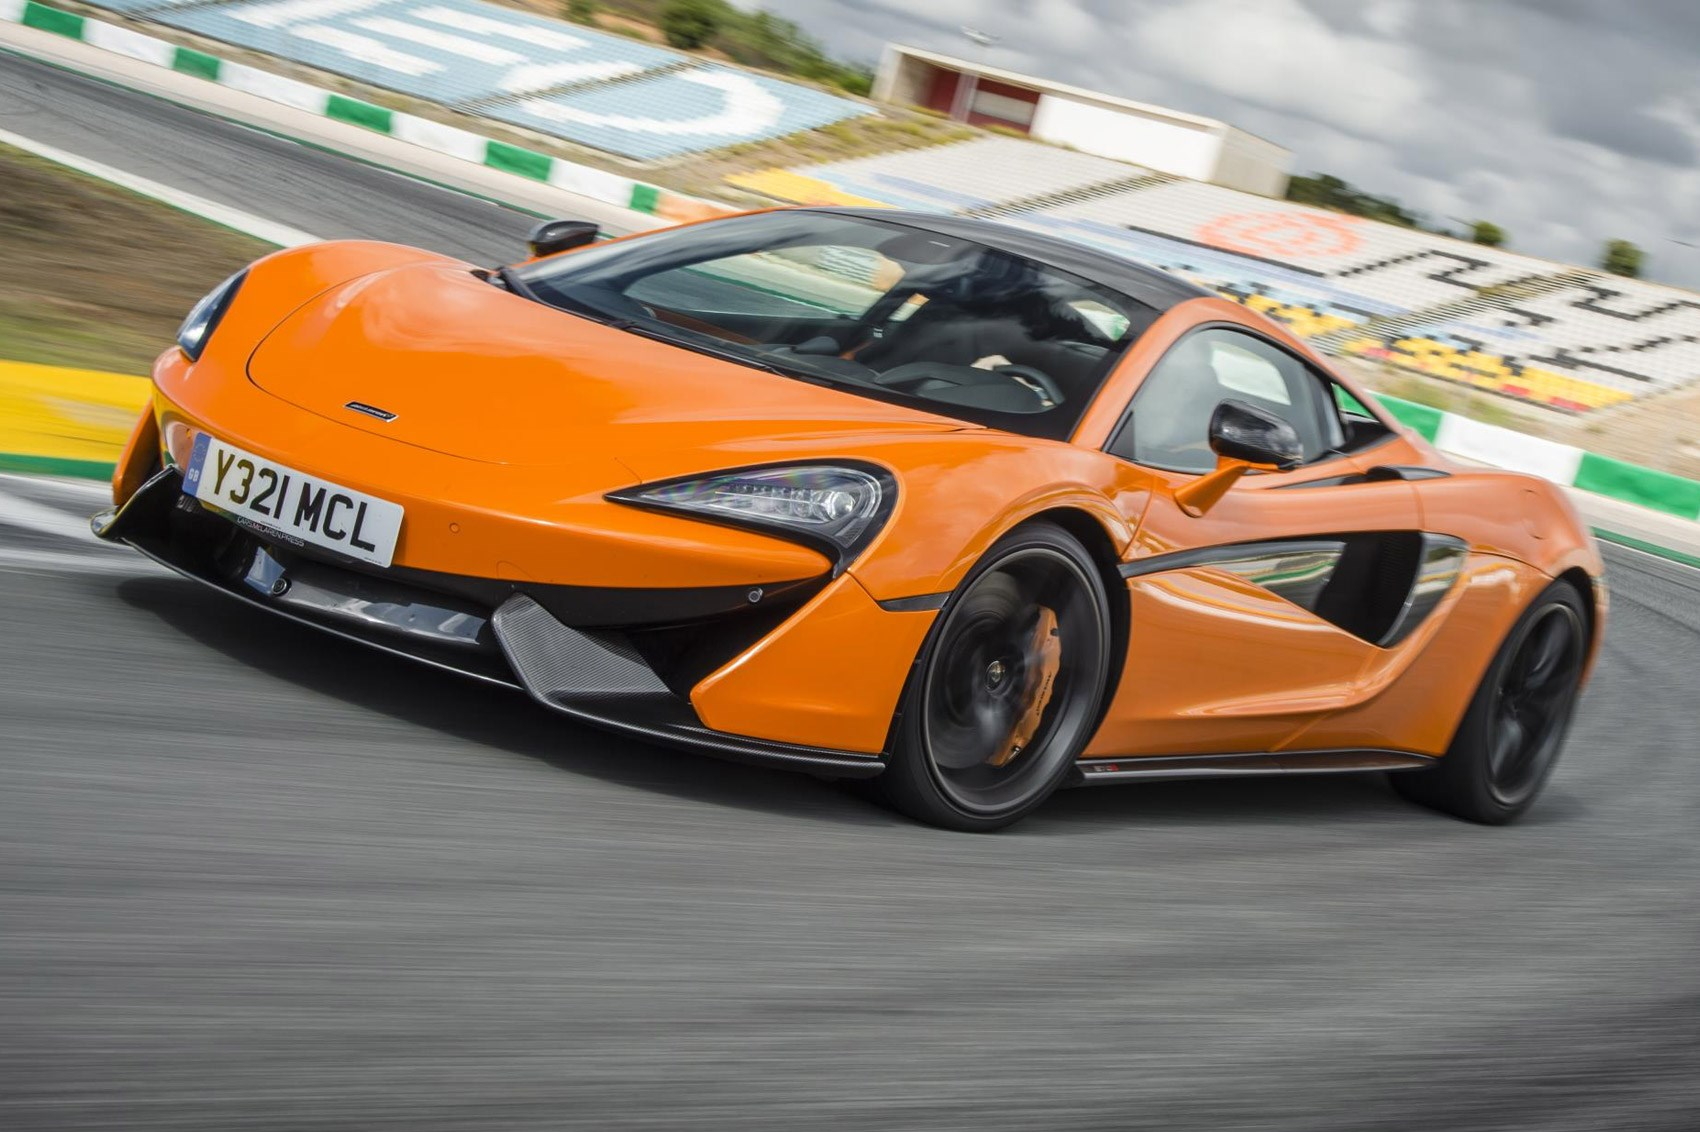 Mclaren S Future Plans Yes To Hybrids No Suvs